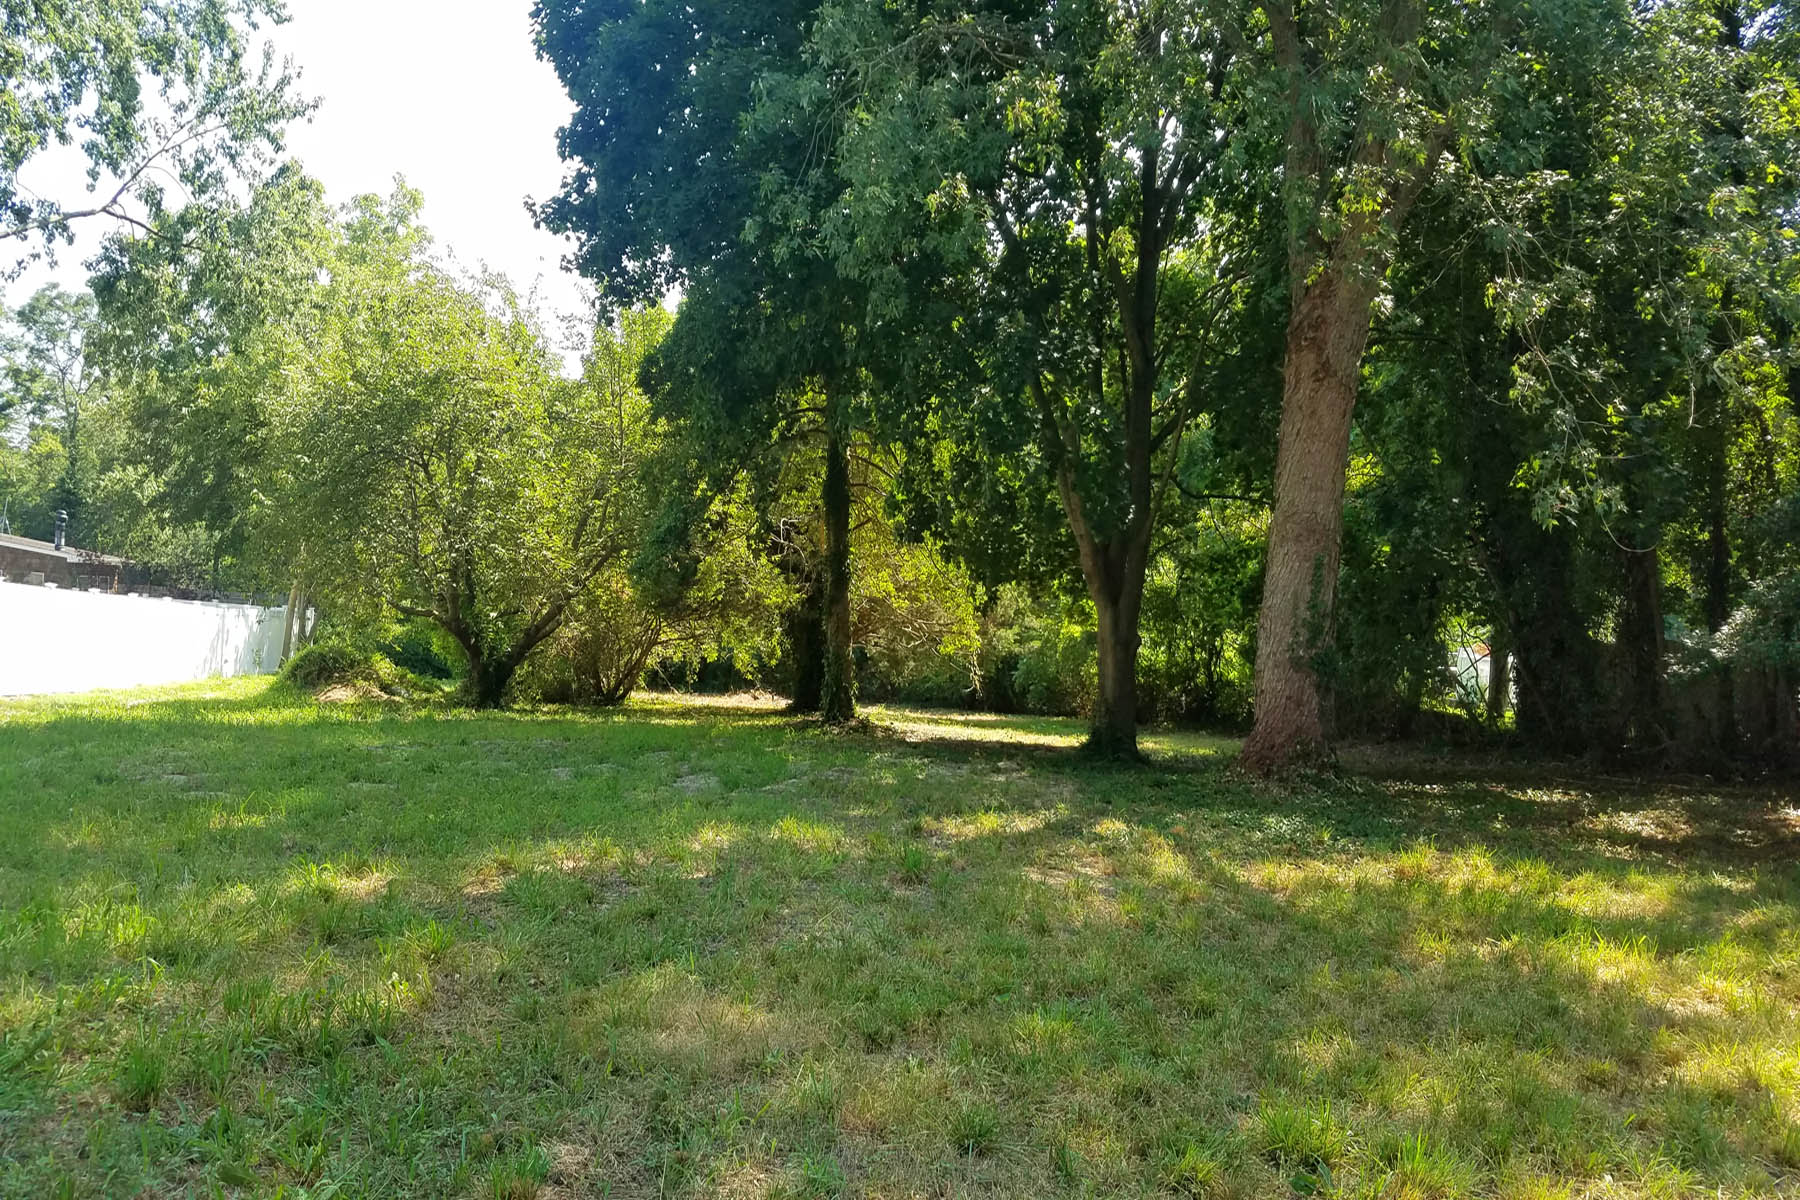 Terreno por un Venta en Build Your Home On This Oversized Lot In Lovely Island Heights 42 Garden Avenue Island Heights, Nueva Jersey 08732 Estados Unidos